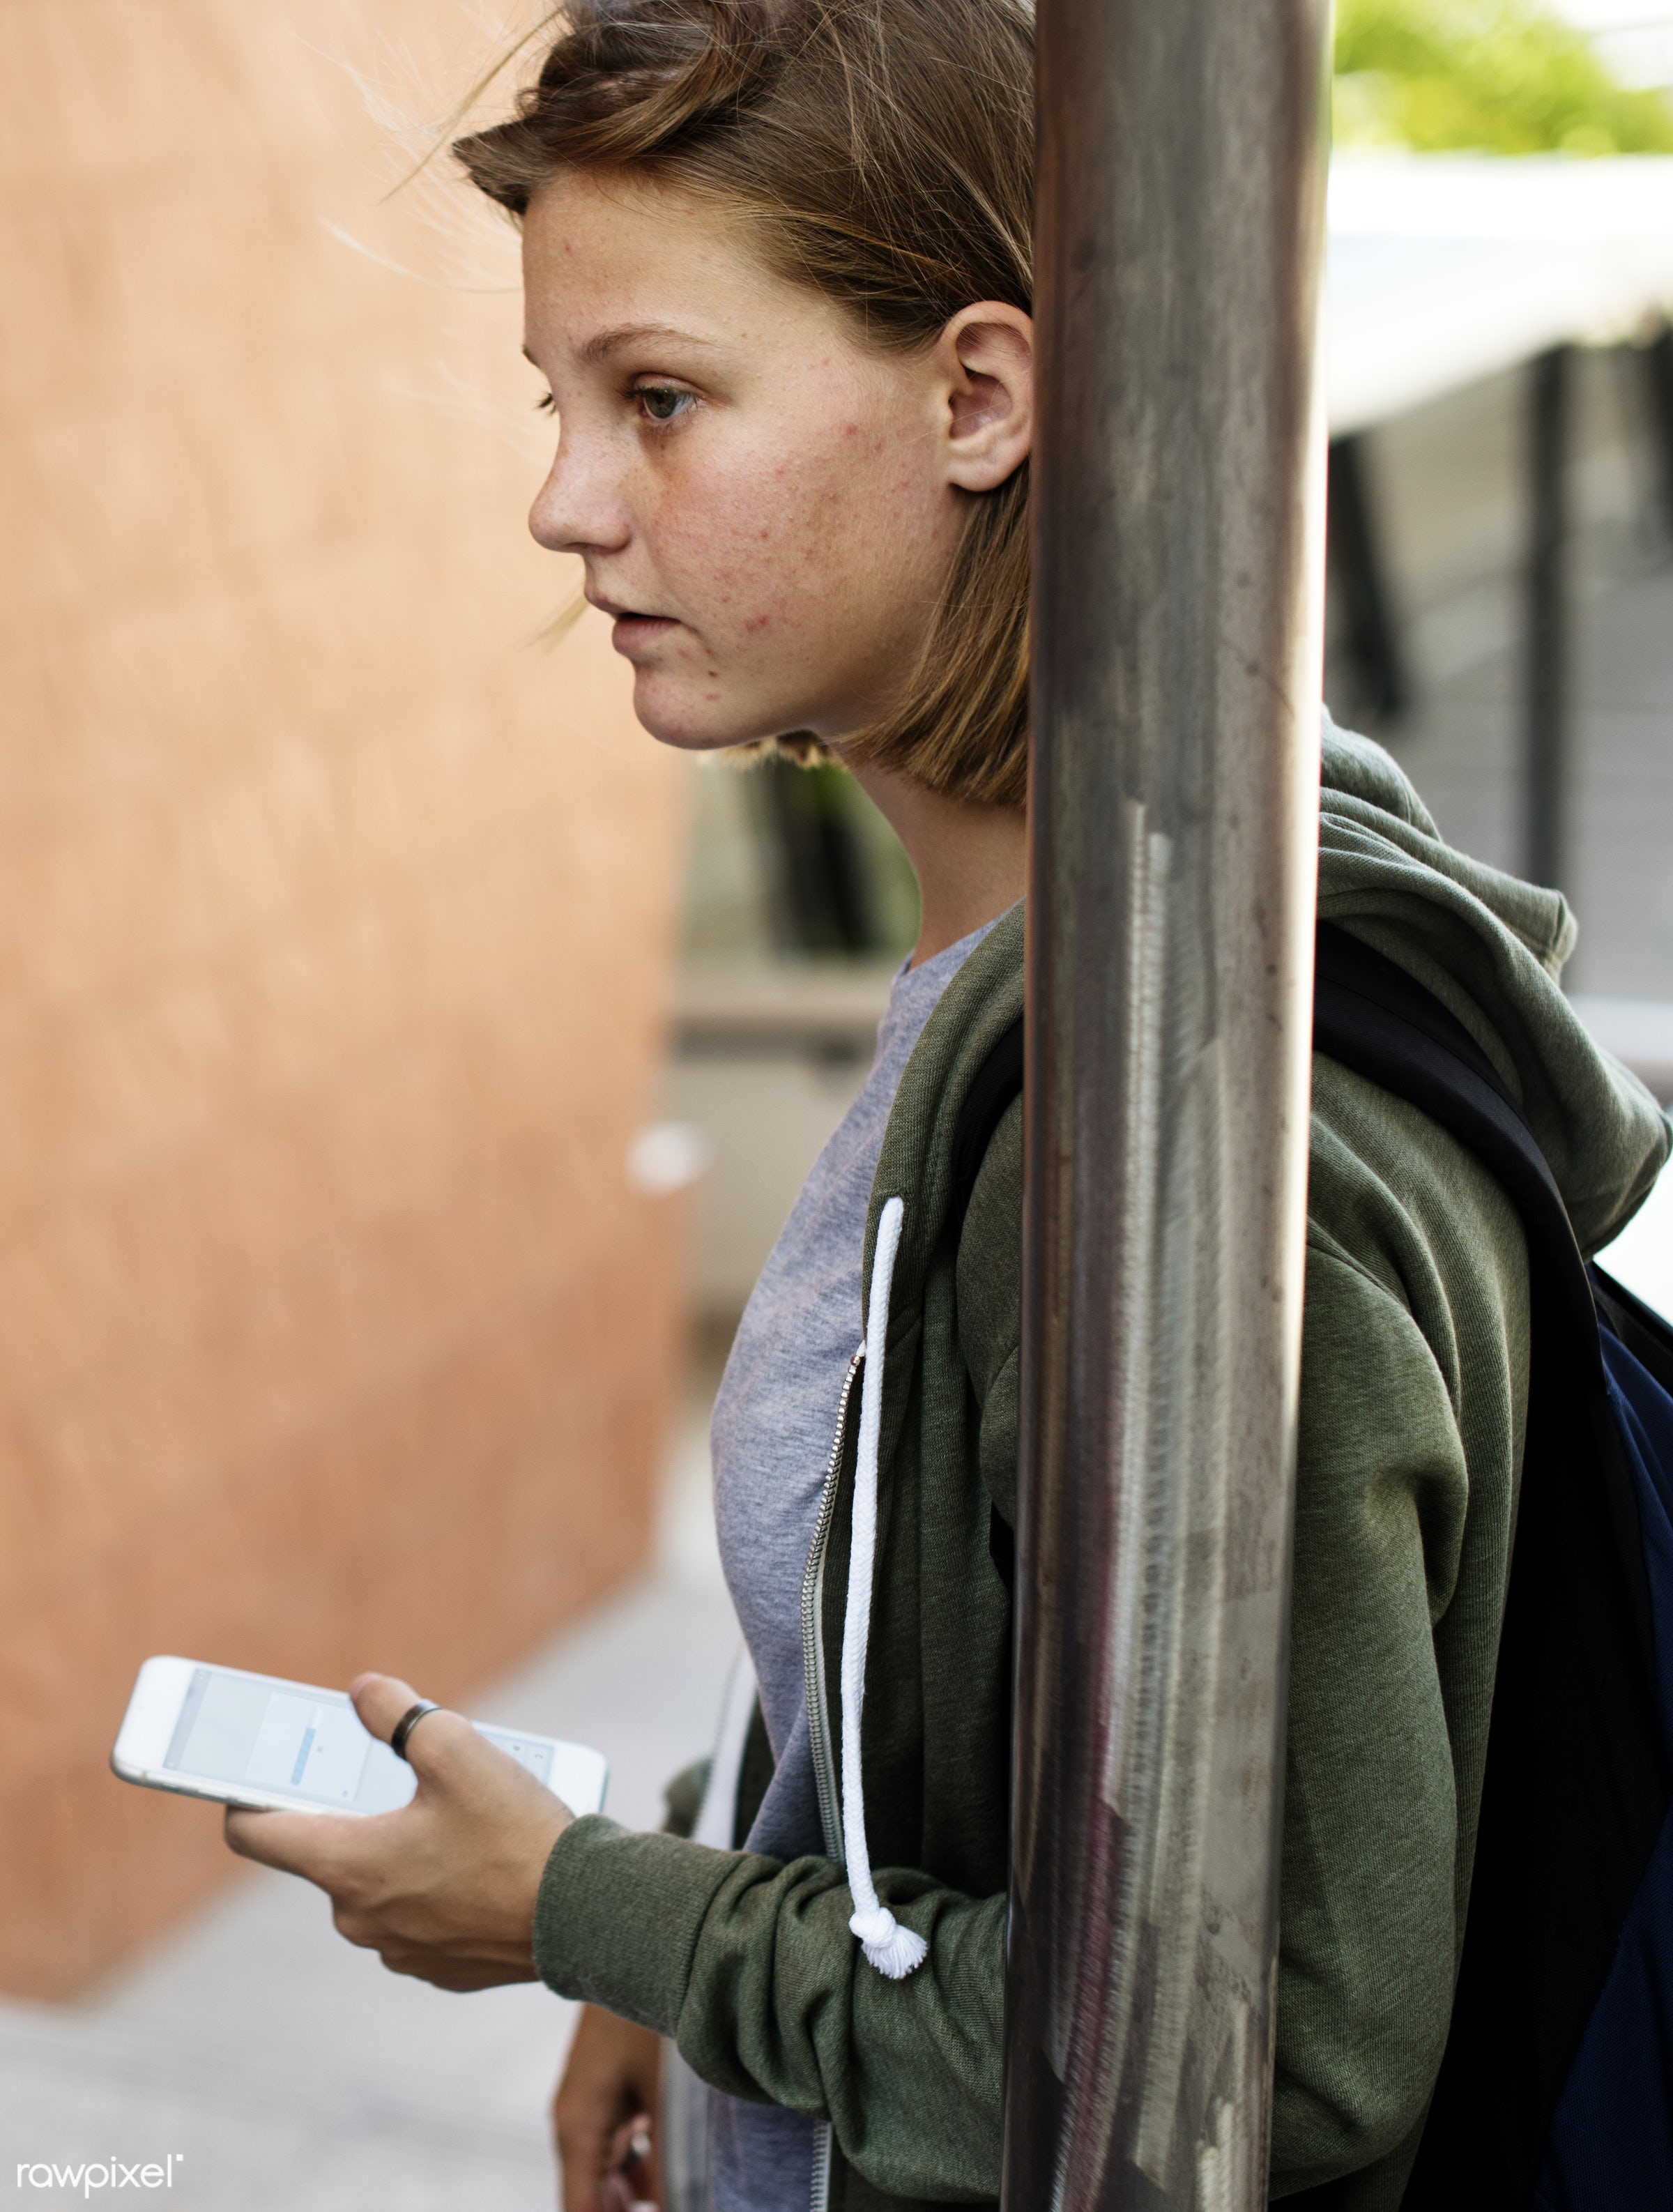 person, using, holding, network, caucasian, girl, stairway, student, casual, lifestyle, smart phone, mobility, building,...